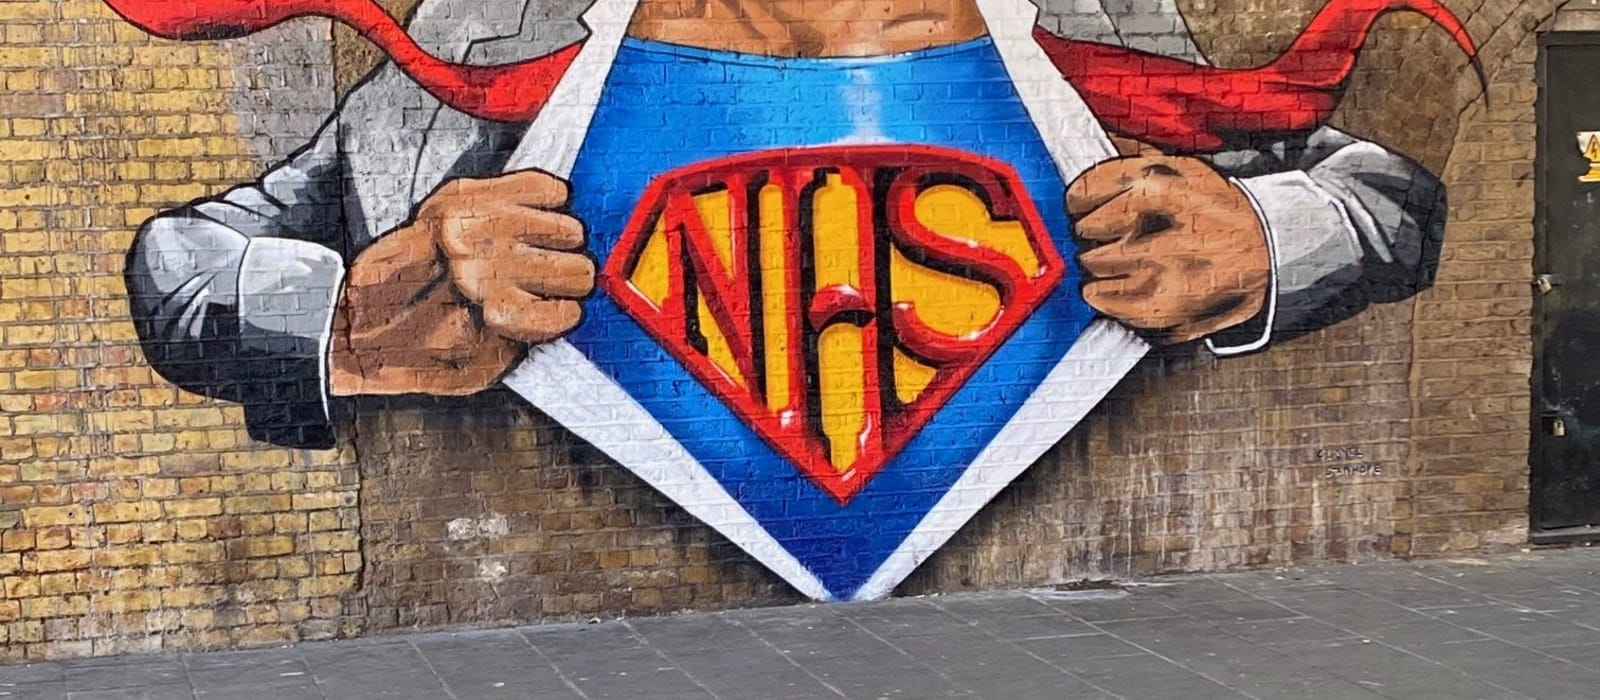 Proud of our NHS